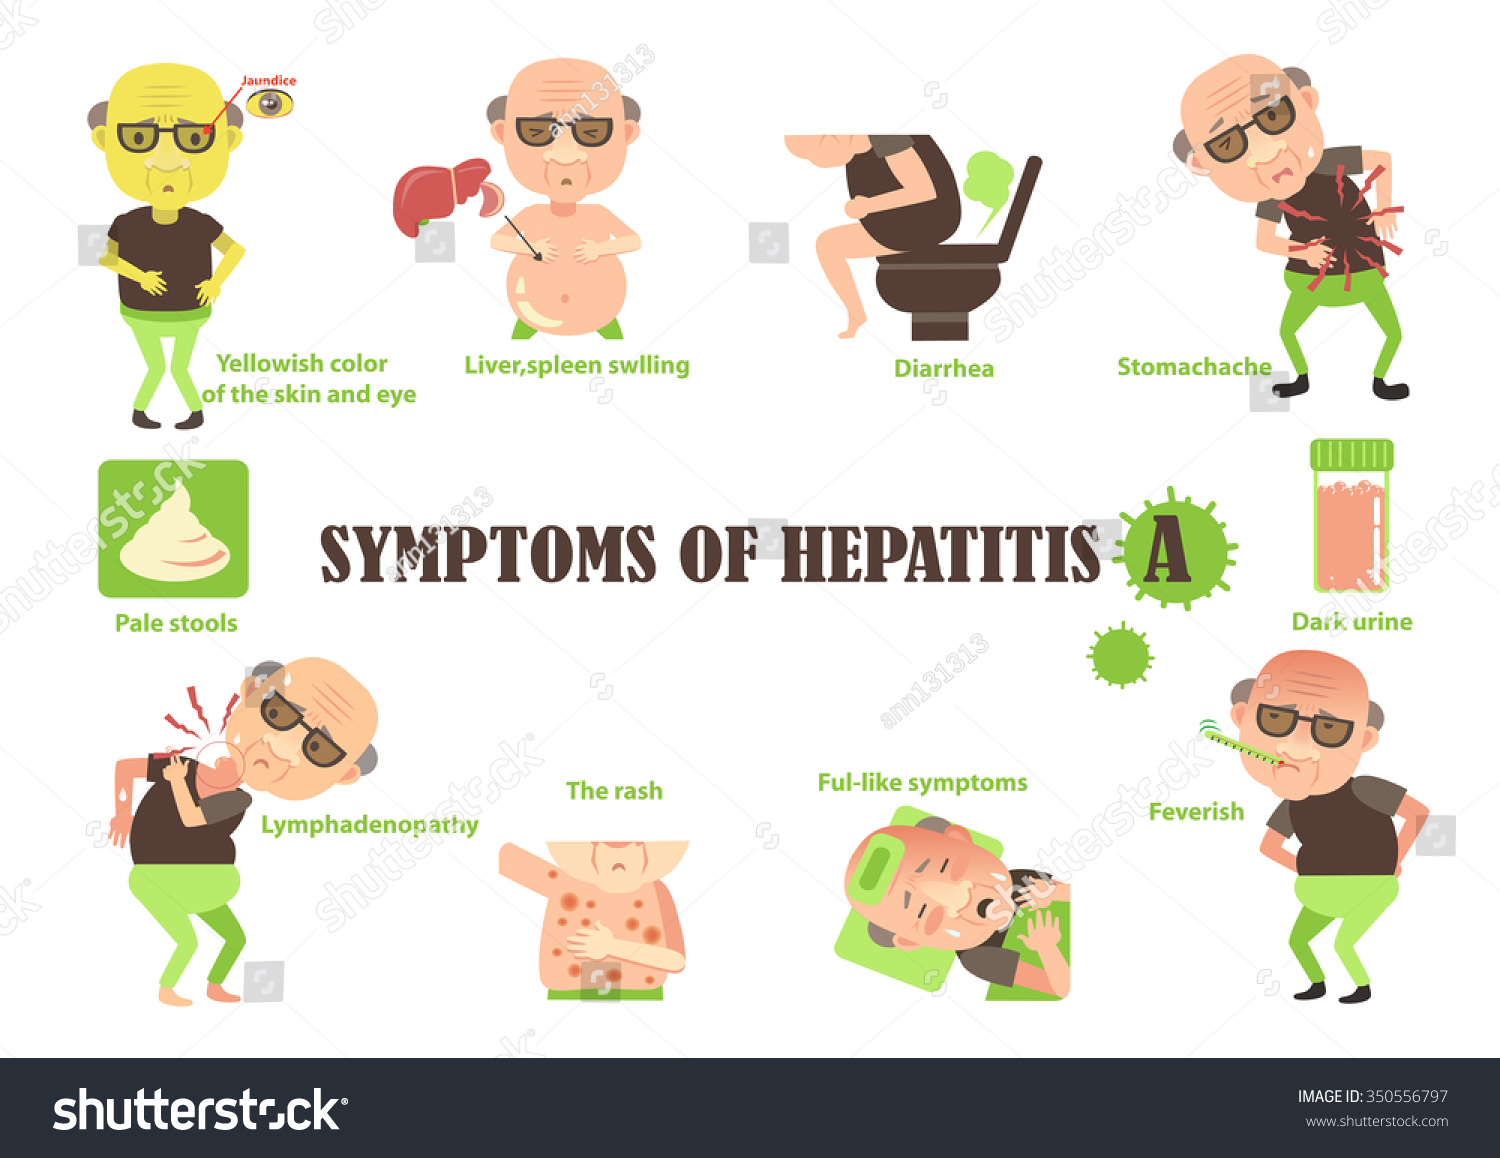 Are You An Expert On Hepatitis A? - photo#17